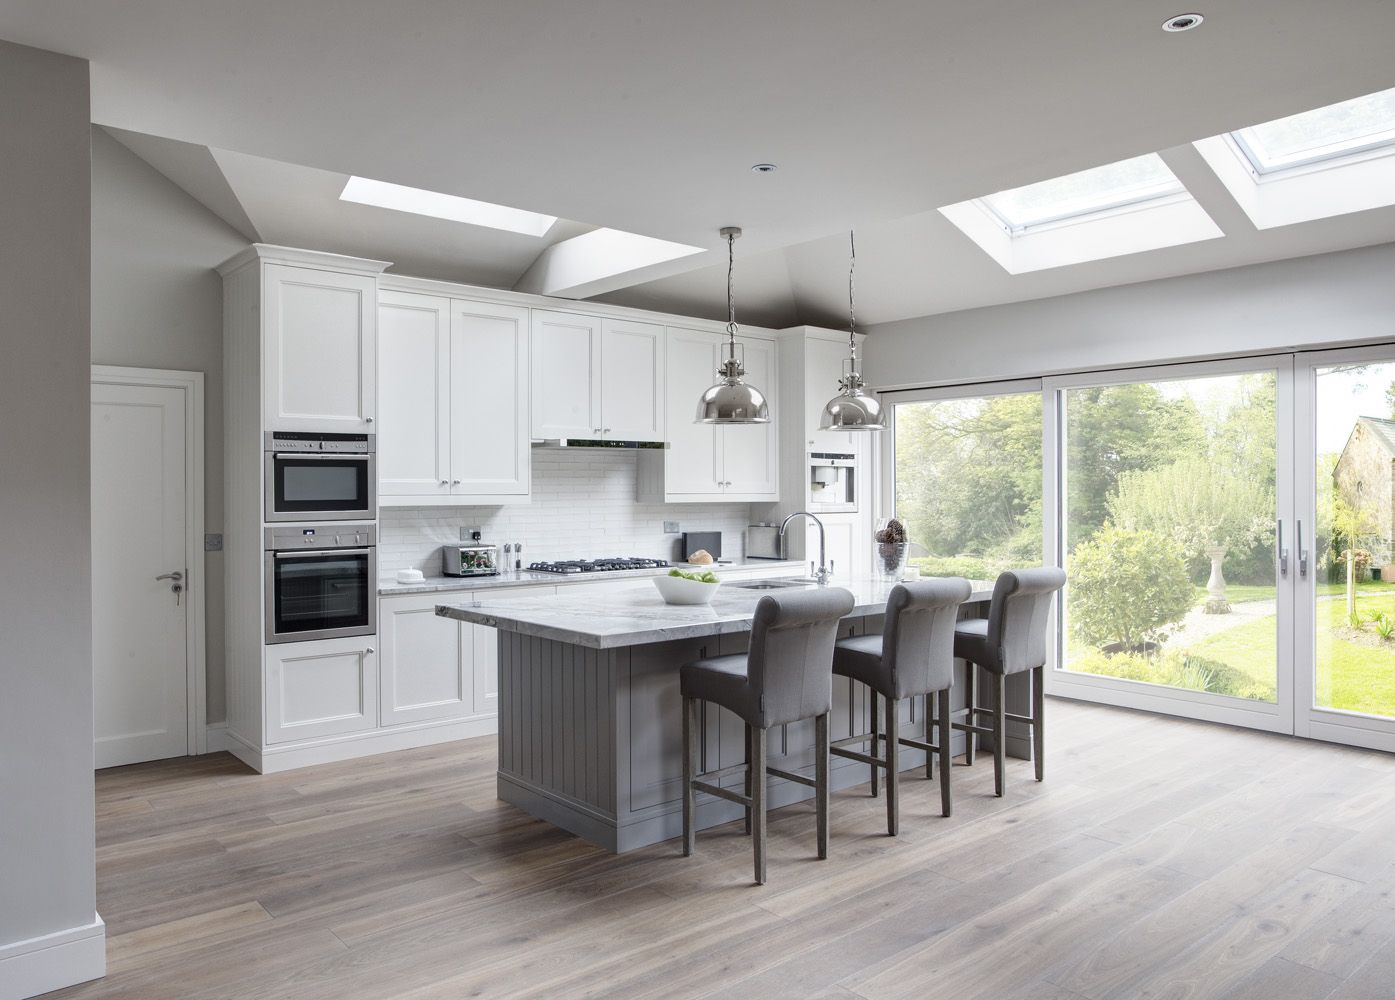 2018 kitchen designs trends – this is what you should be doing too